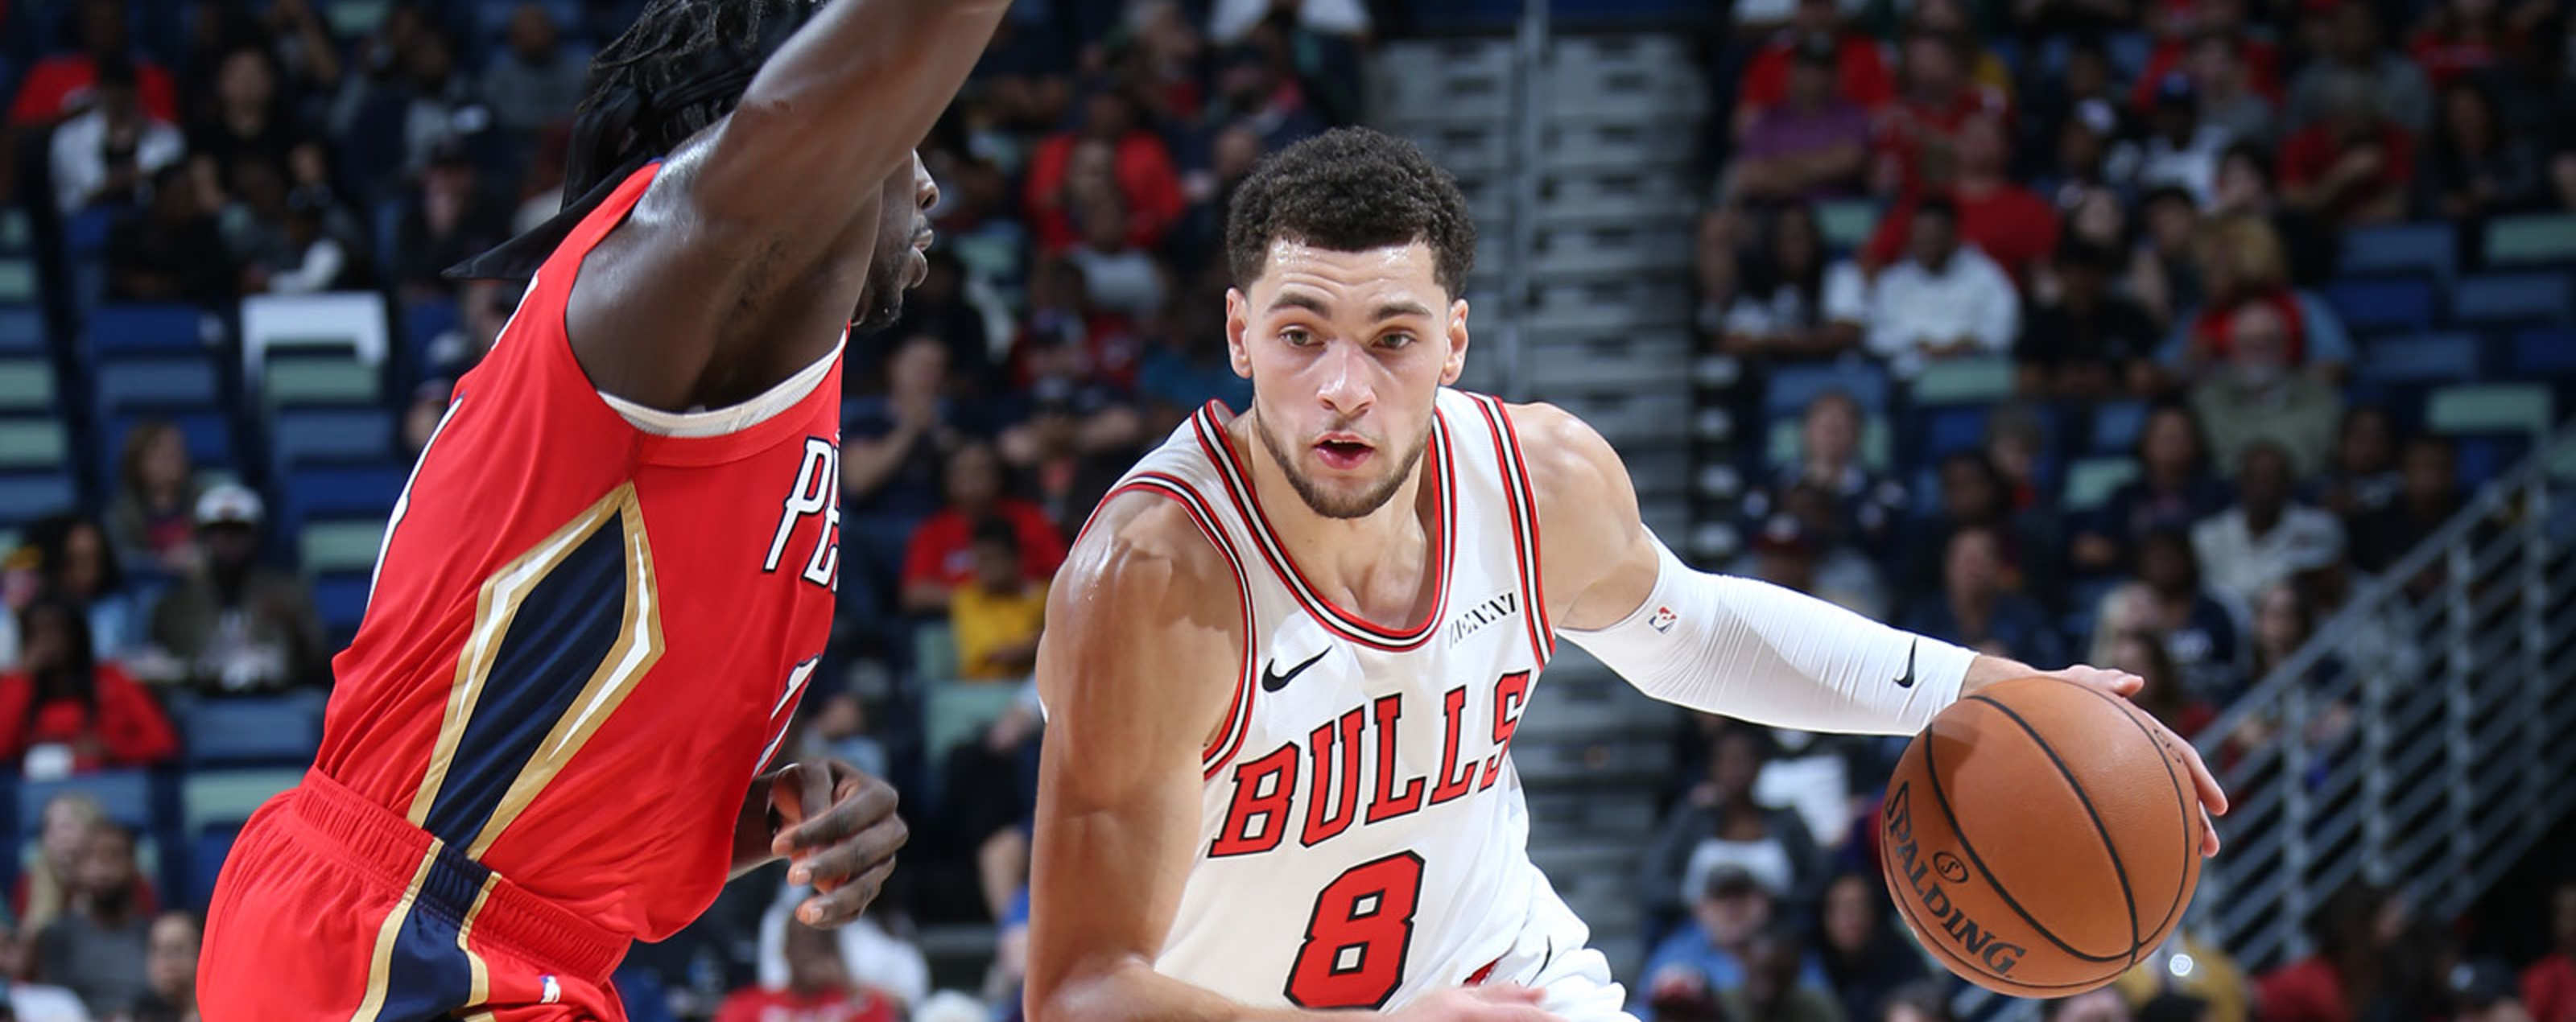 bulls lose to pelicans 107-98, despite a strong rally in the fourth